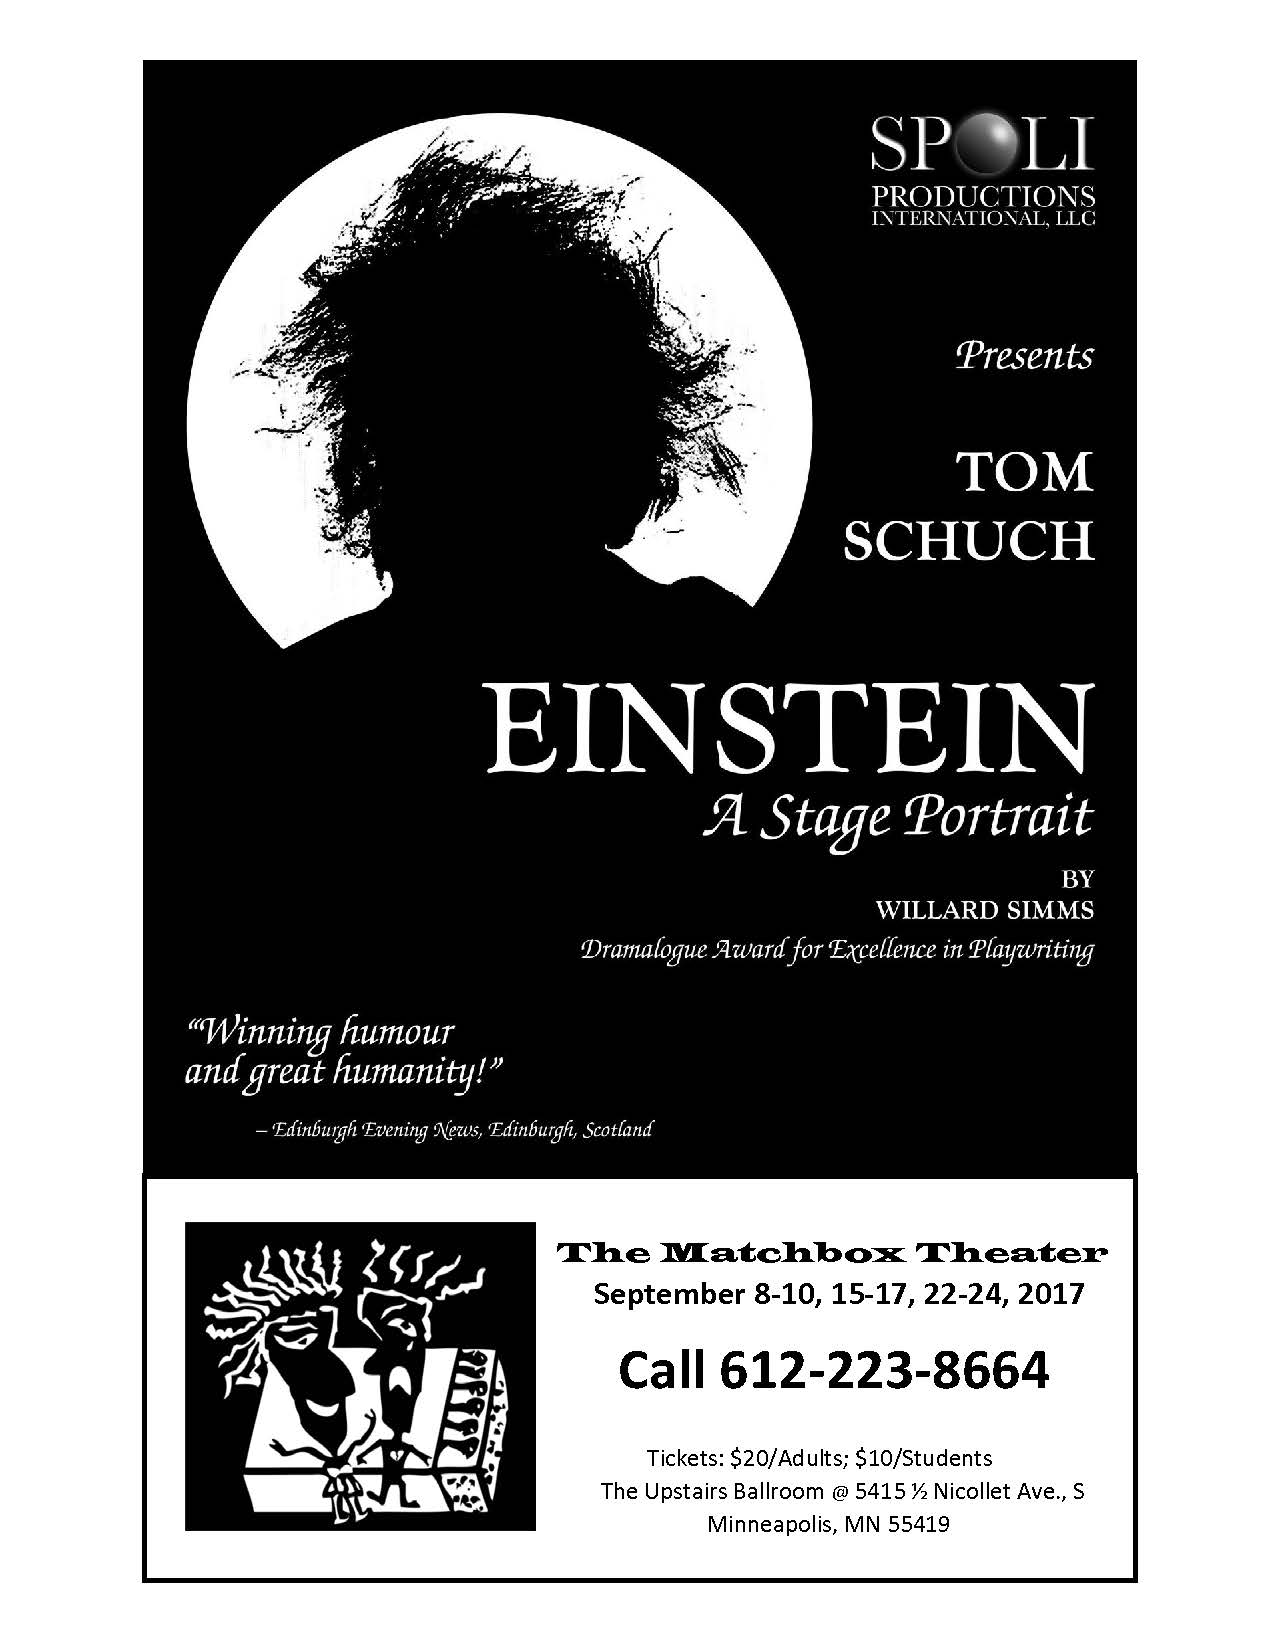 Albert Einstein; The Matchbox Theater; Tom Schuch